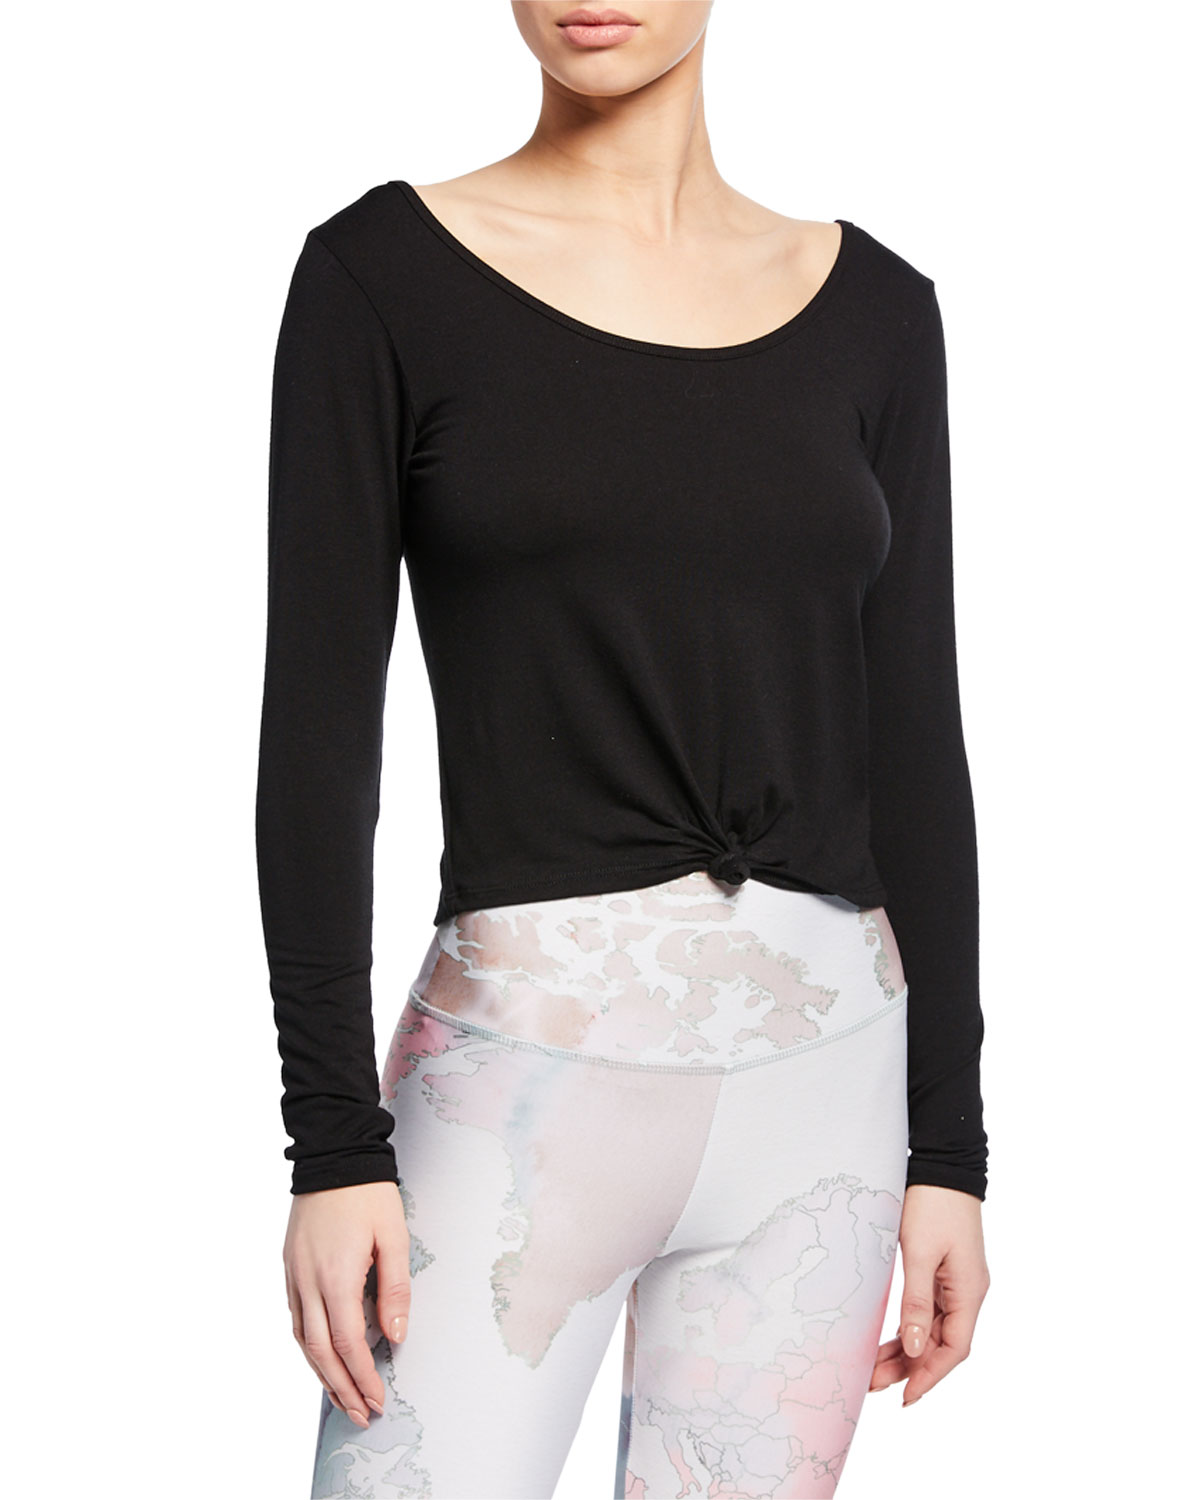 373f4d185ed7b Onzie Long-Sleeve Knotted Crop Top